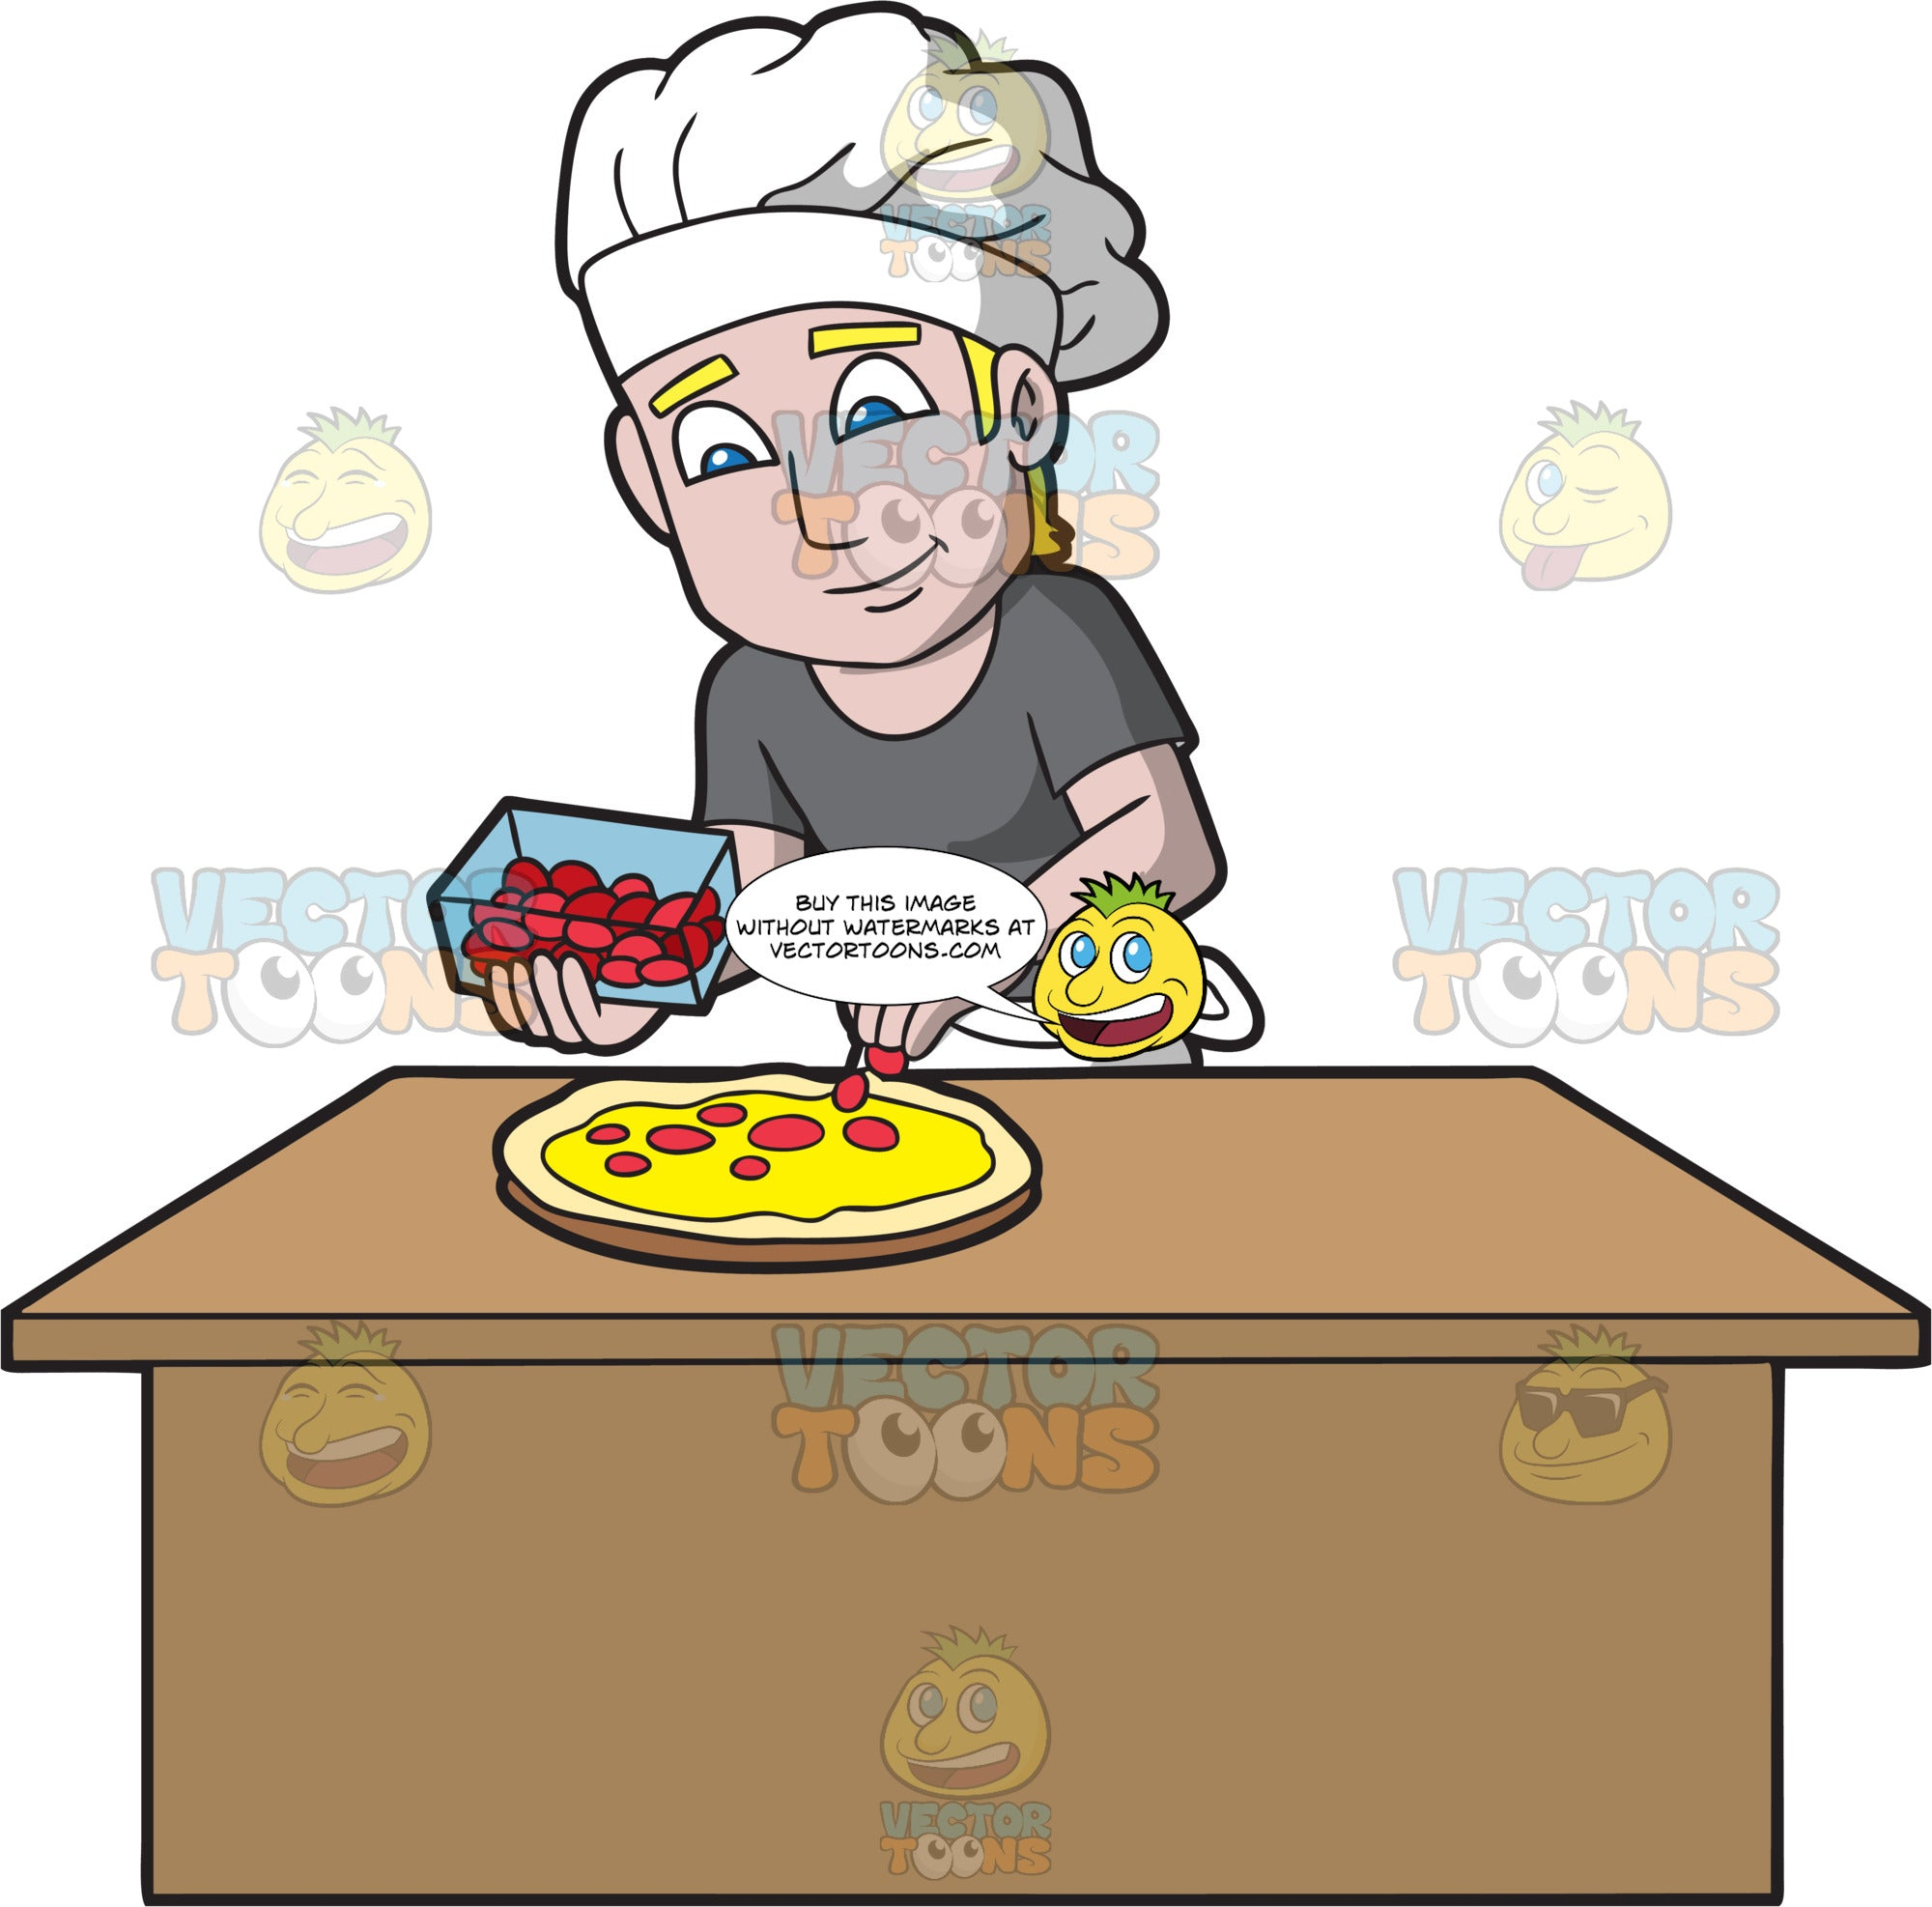 A Male Pizza Maker Adding Pepperoni Slices To A Pizza